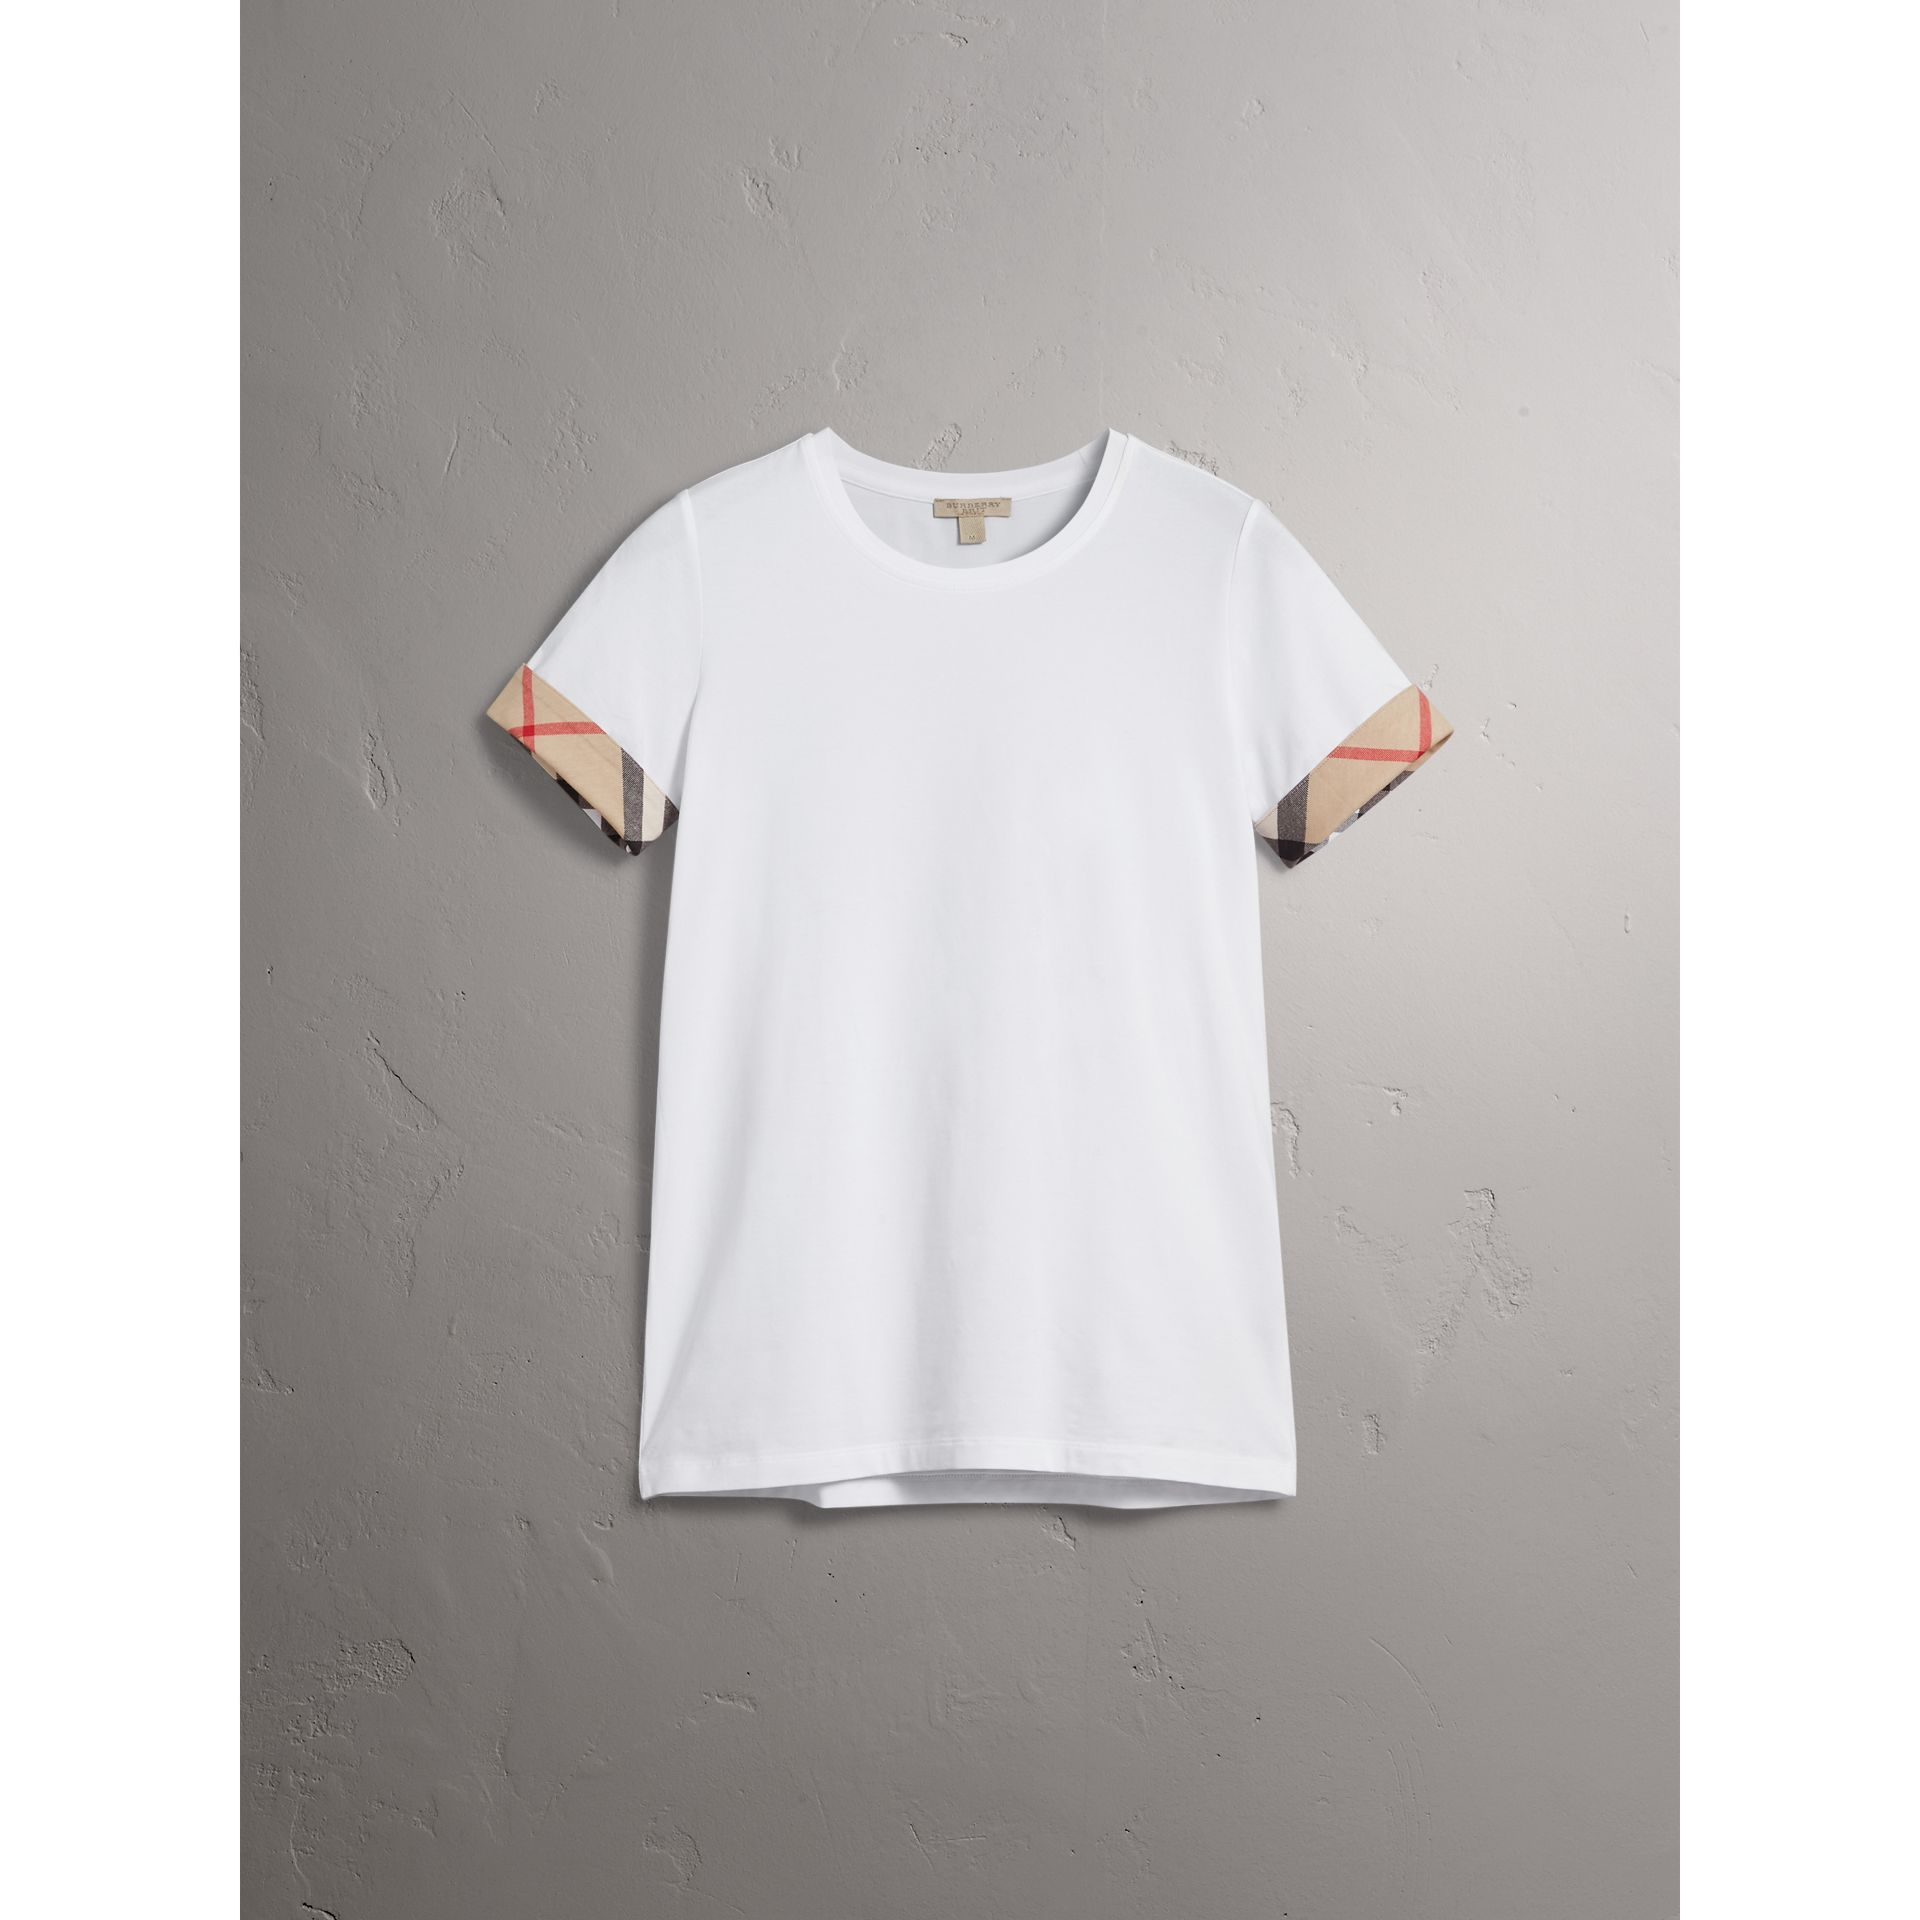 Check Cuff Stretch Cotton T-Shirt in White - Women | Burberry Australia - gallery image 4